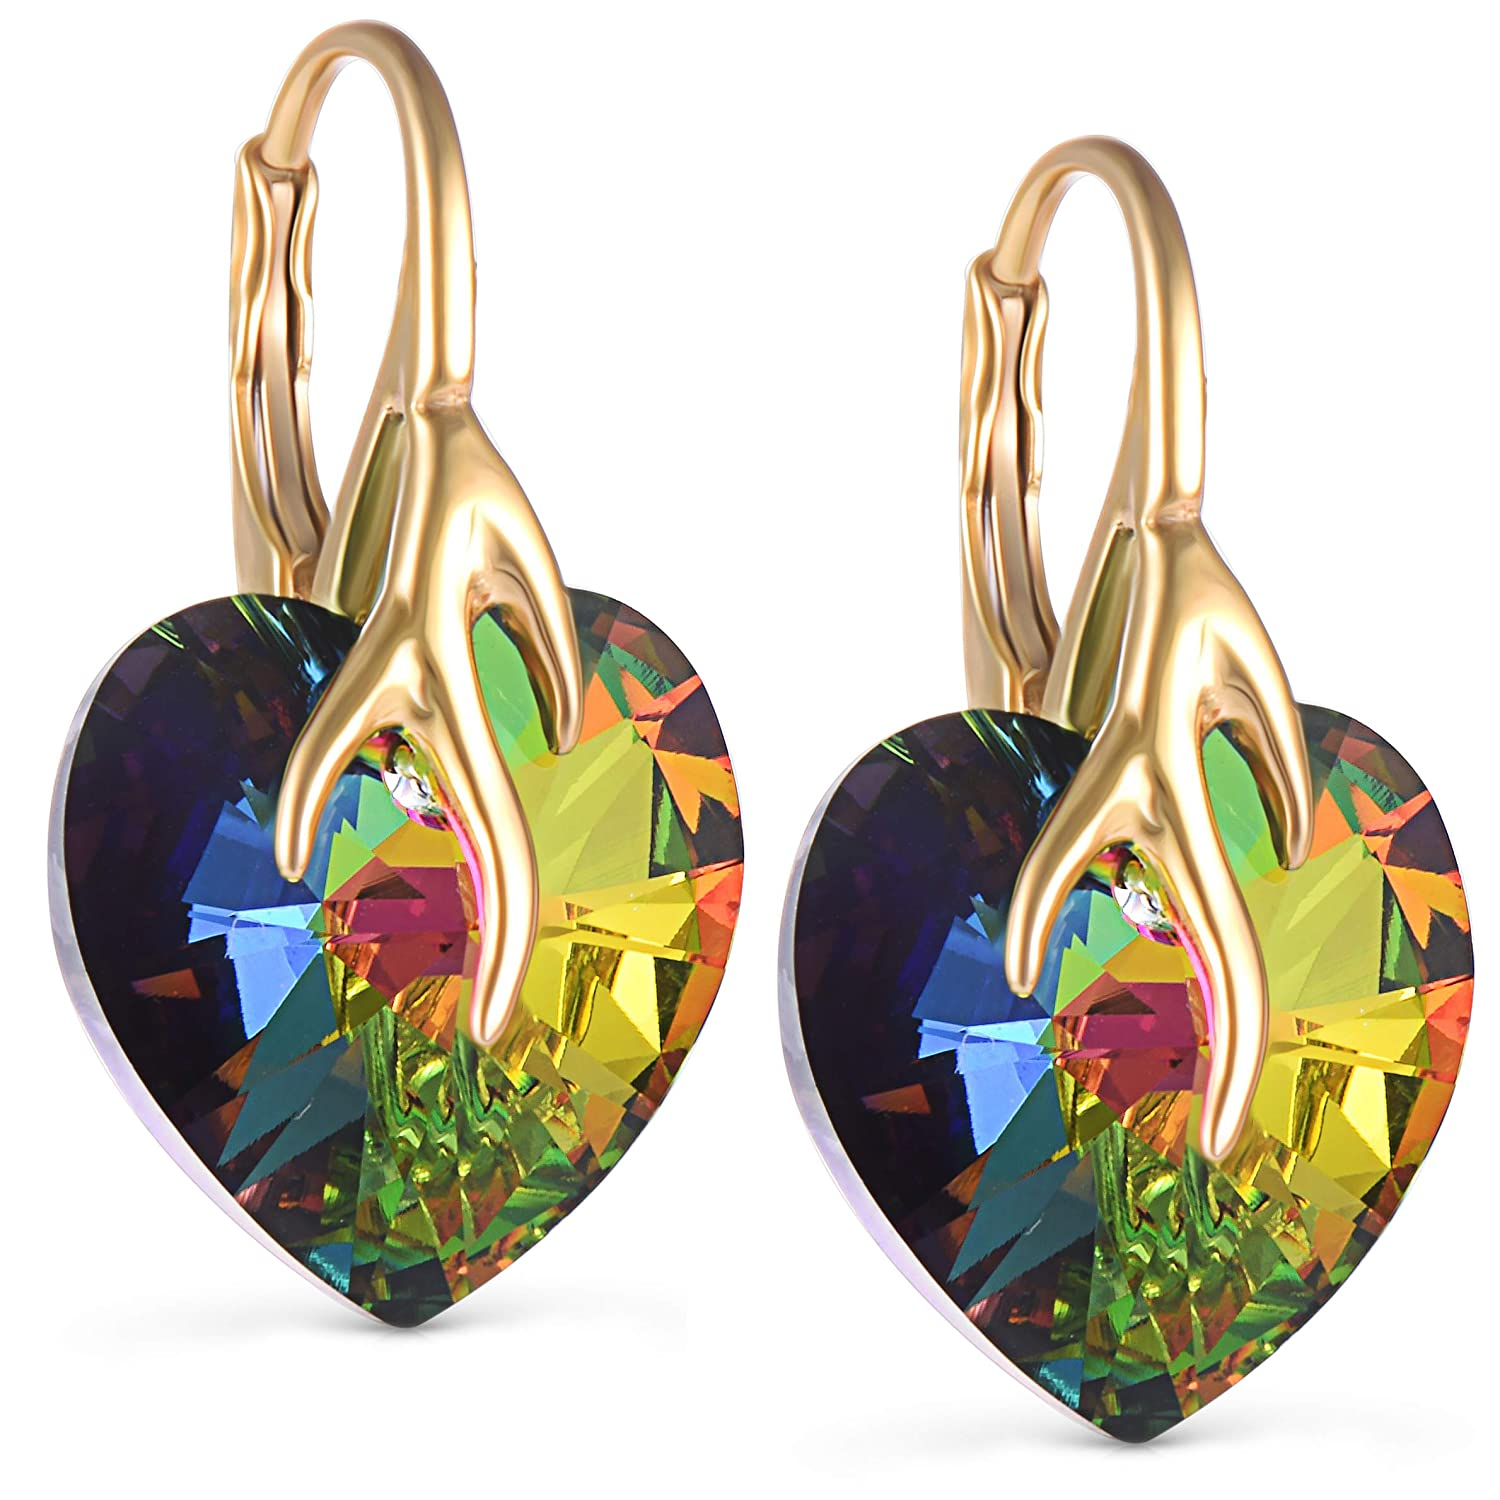 2e2d1f34631a 18ct Gold Finish Drop Dangle Earrings with Swarovski Multicolour Heart  Crystals Trendy Stylish Fashion Birthday Christmas Gift  Amazon.co.uk   Jewellery